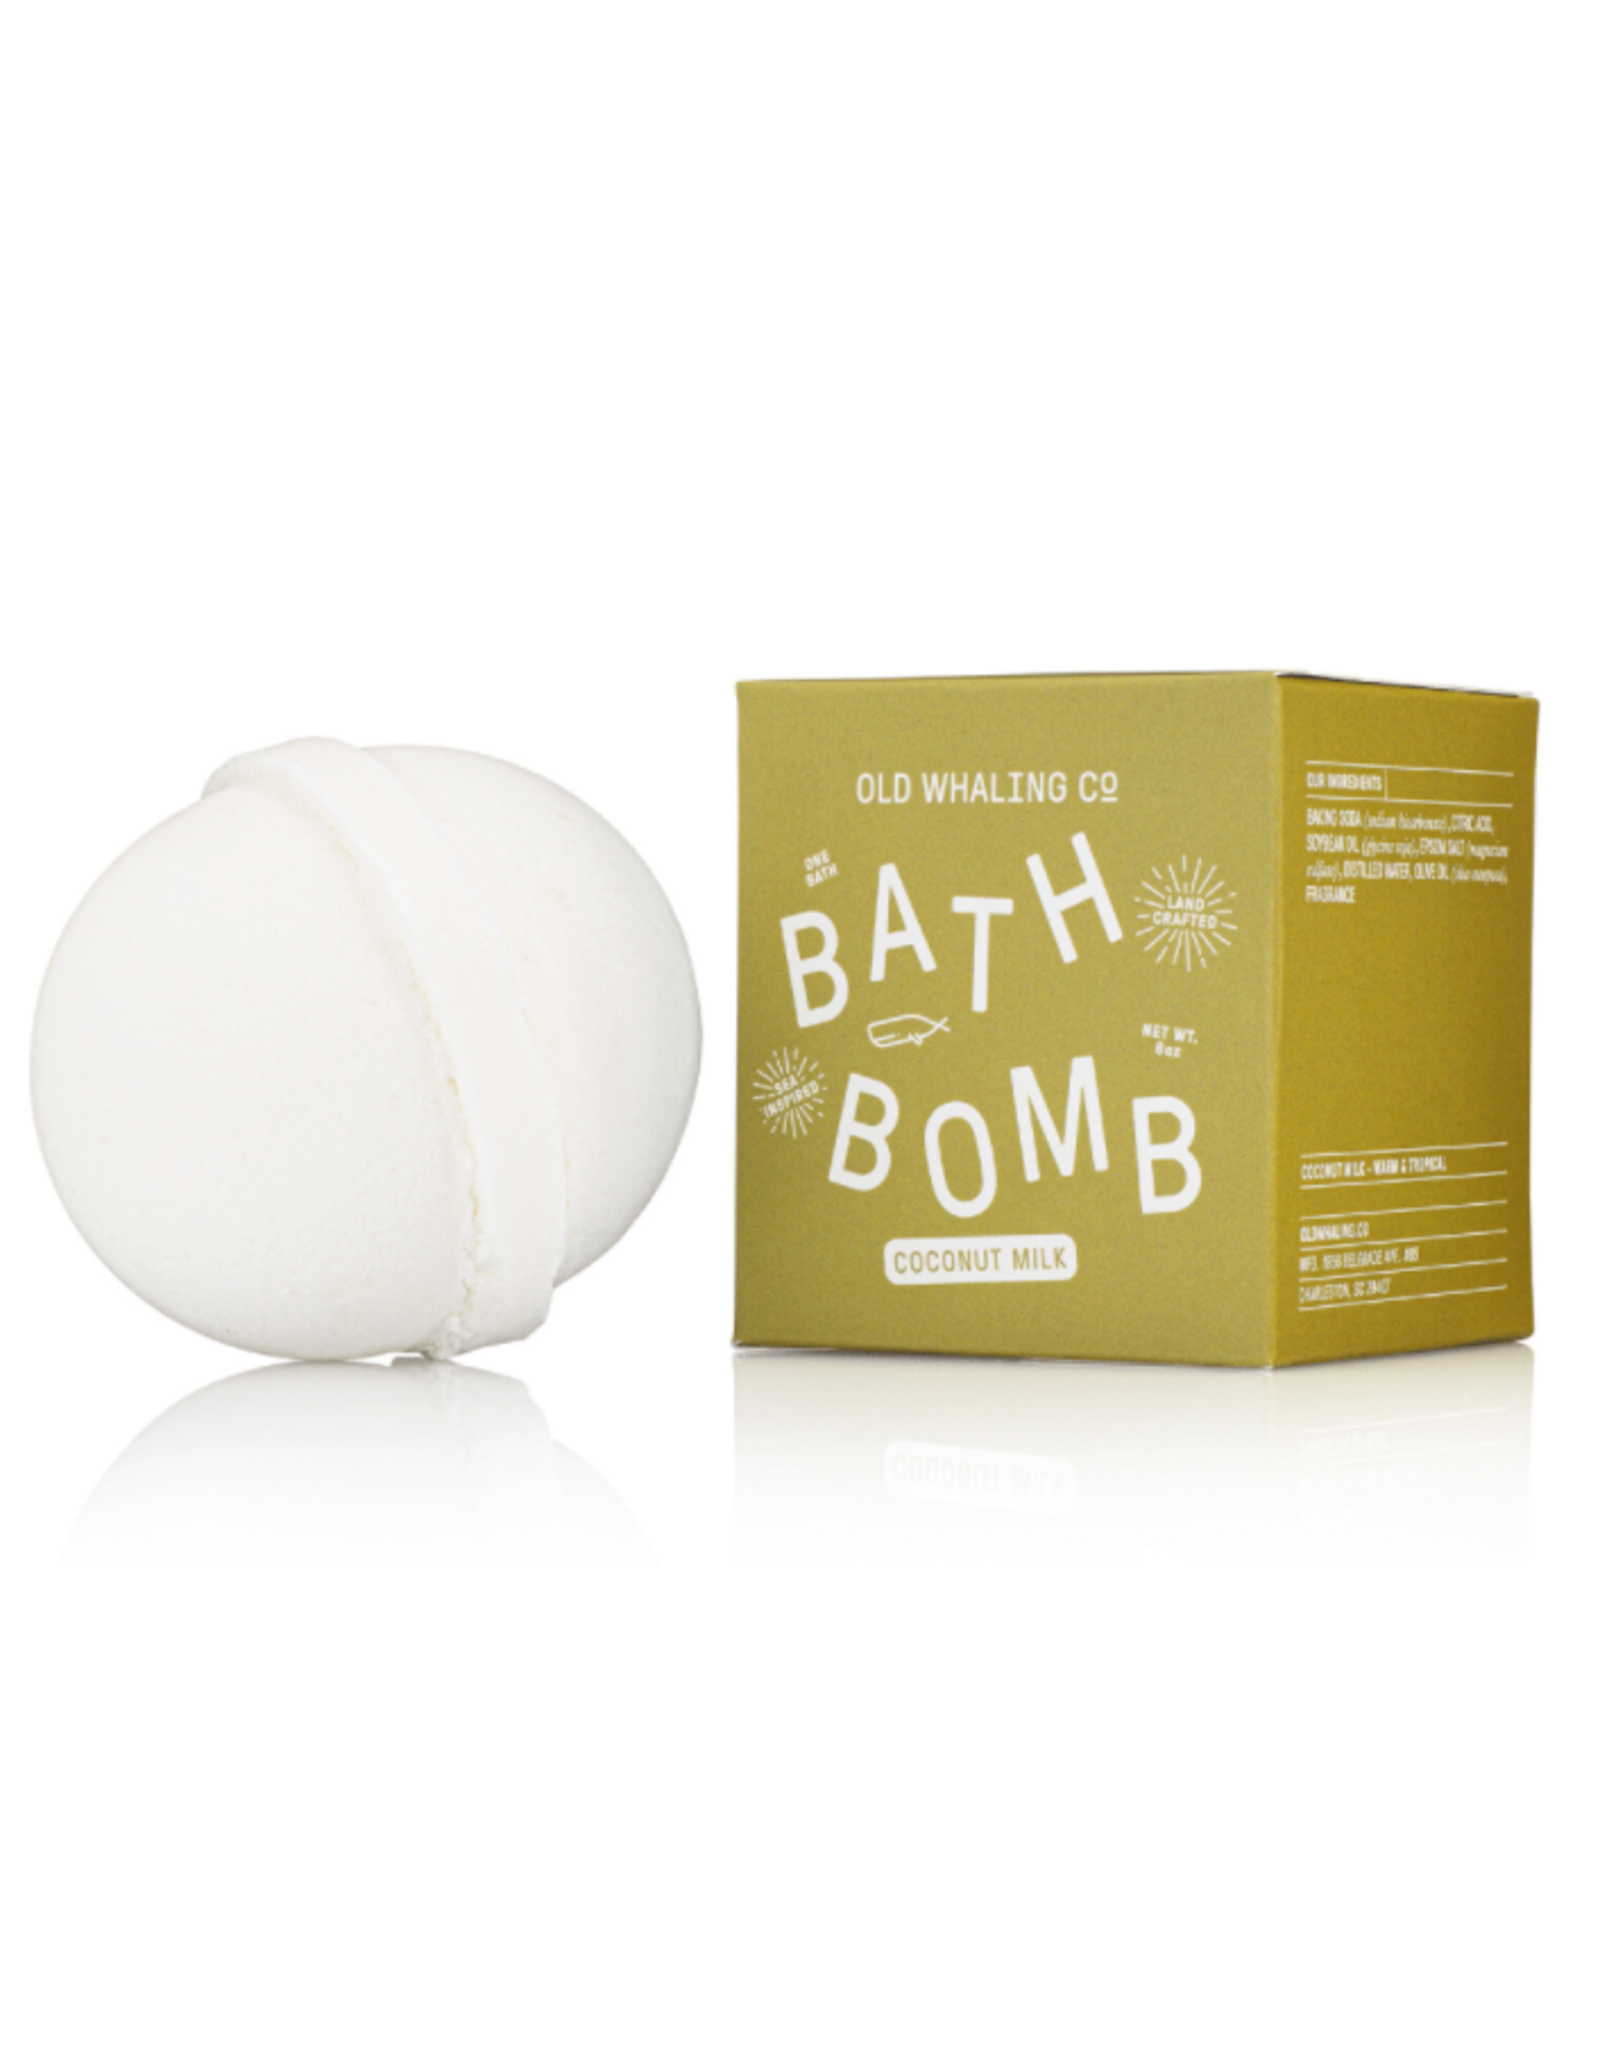 Old Whaling Co. Coconut Milk Bath Bomb